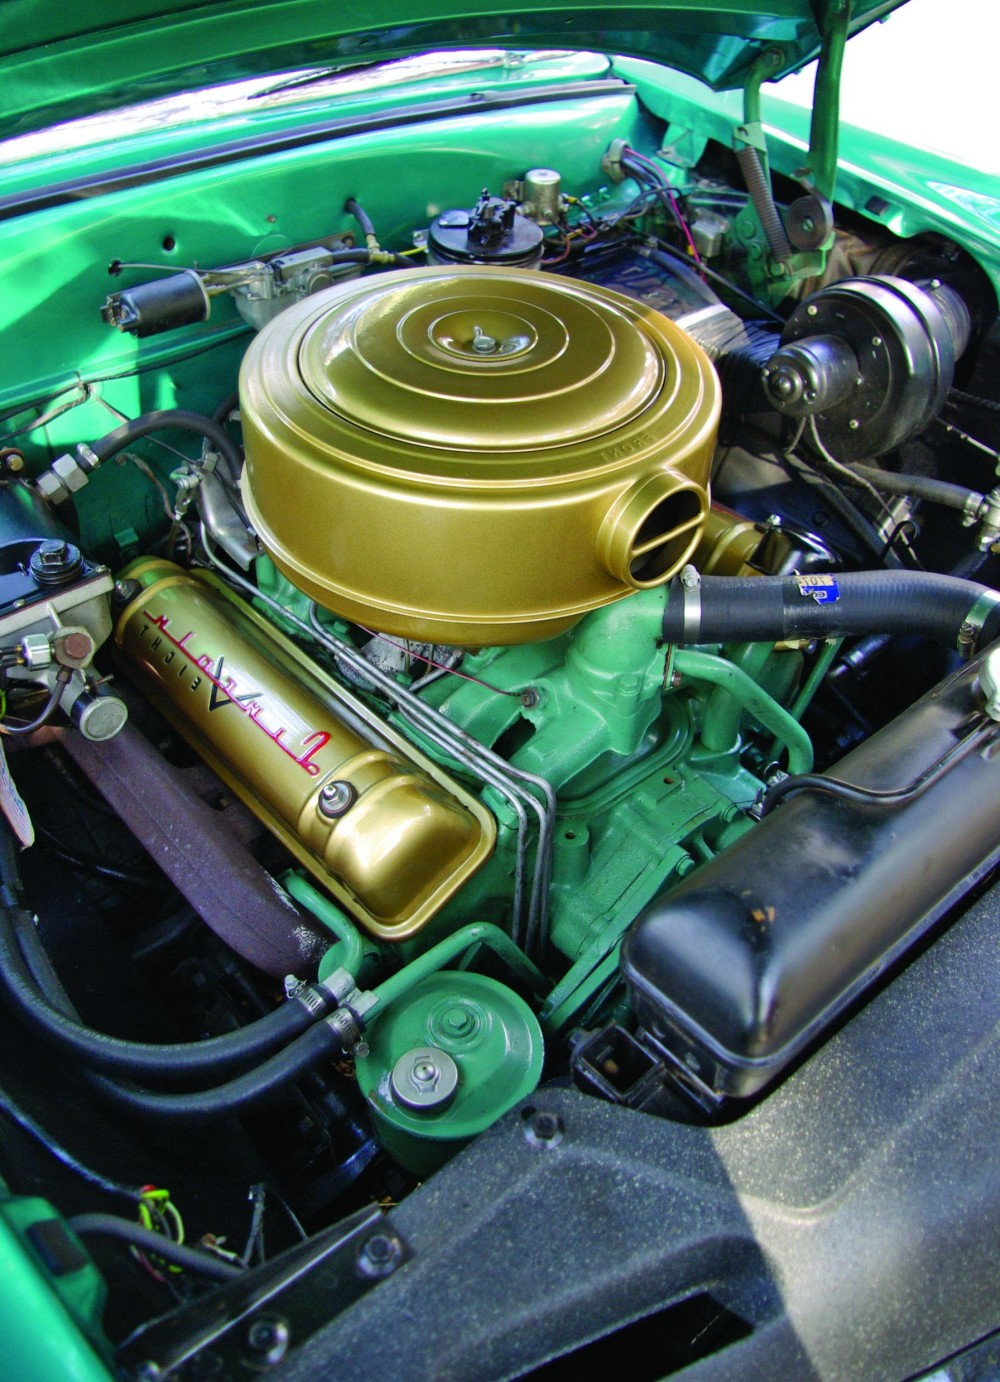 hight resolution of the gold finish on the valve covers and air cleaner complements the green painted engine block even after 61 000 miles the untouched 341 cu in v 8 engine